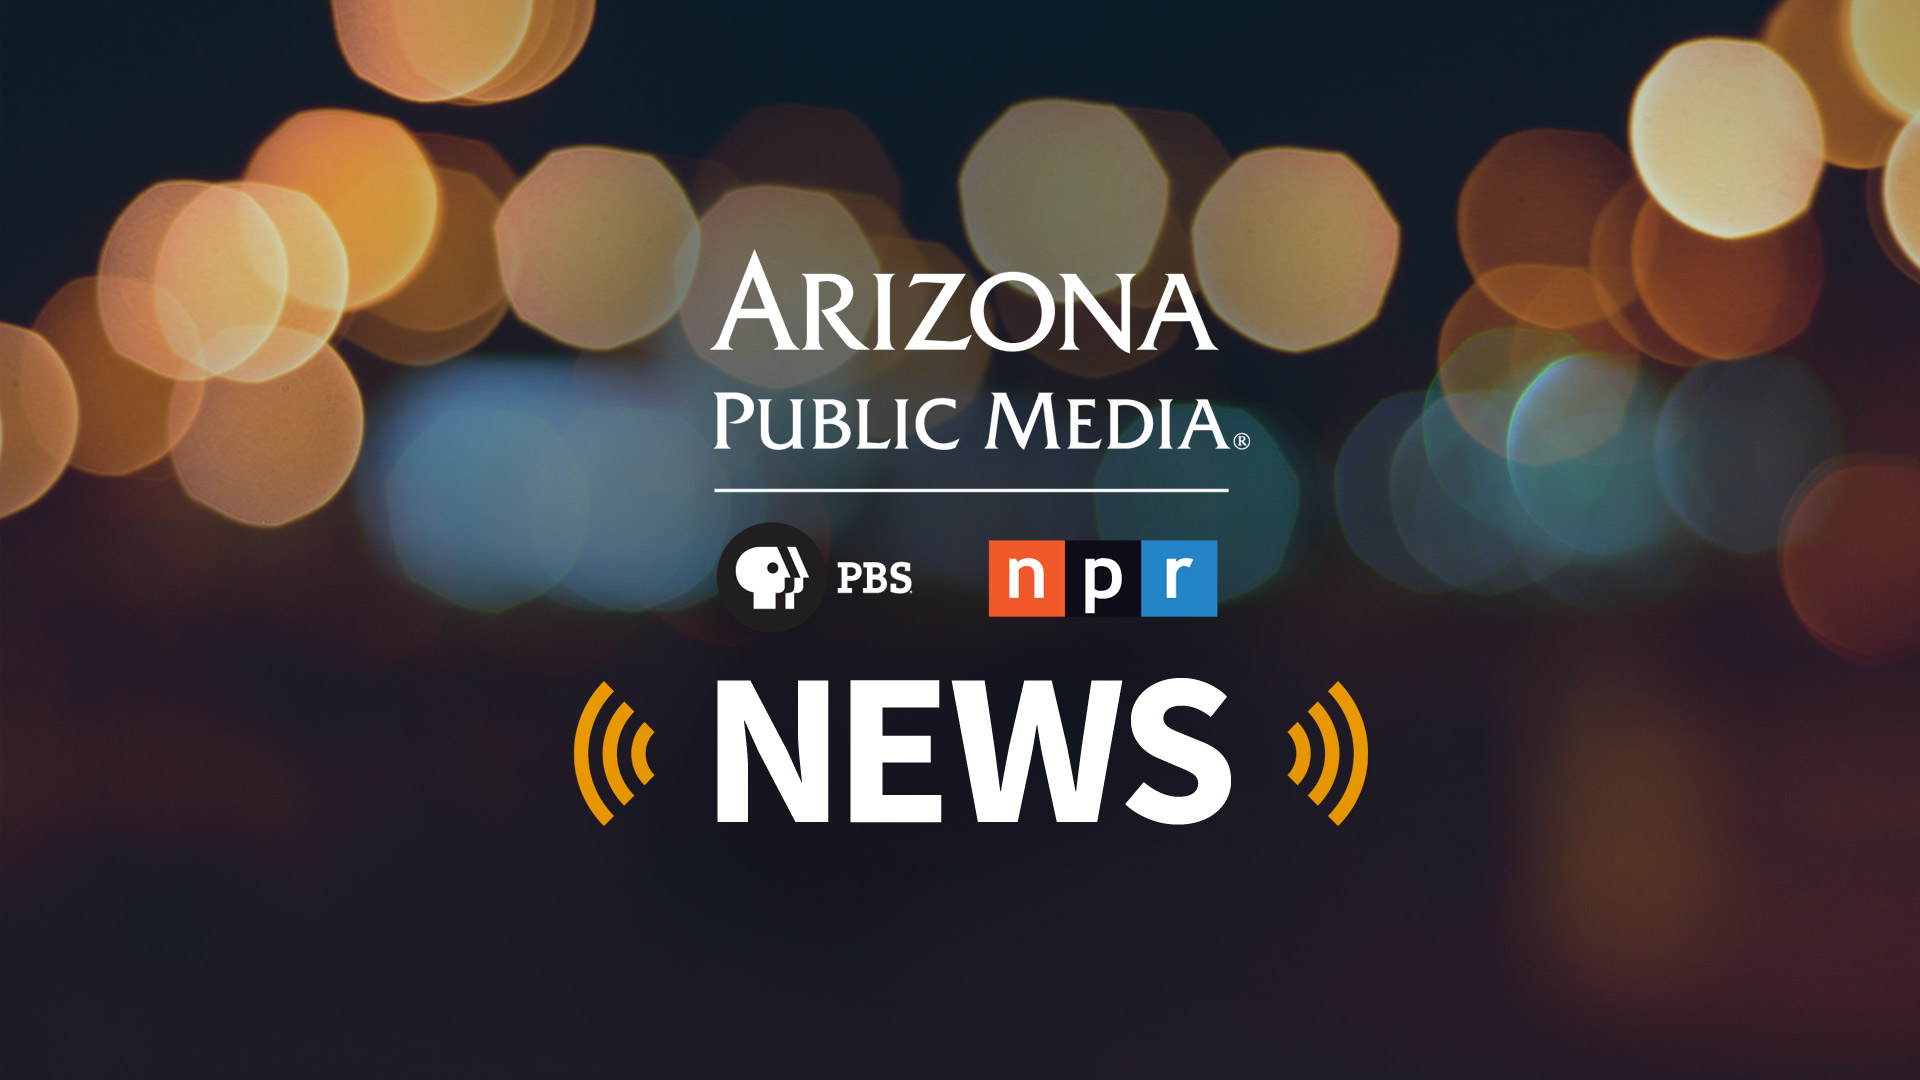 AZPM is Southern Arizona's NPR and PBS affiliate and provides original television and radio content.